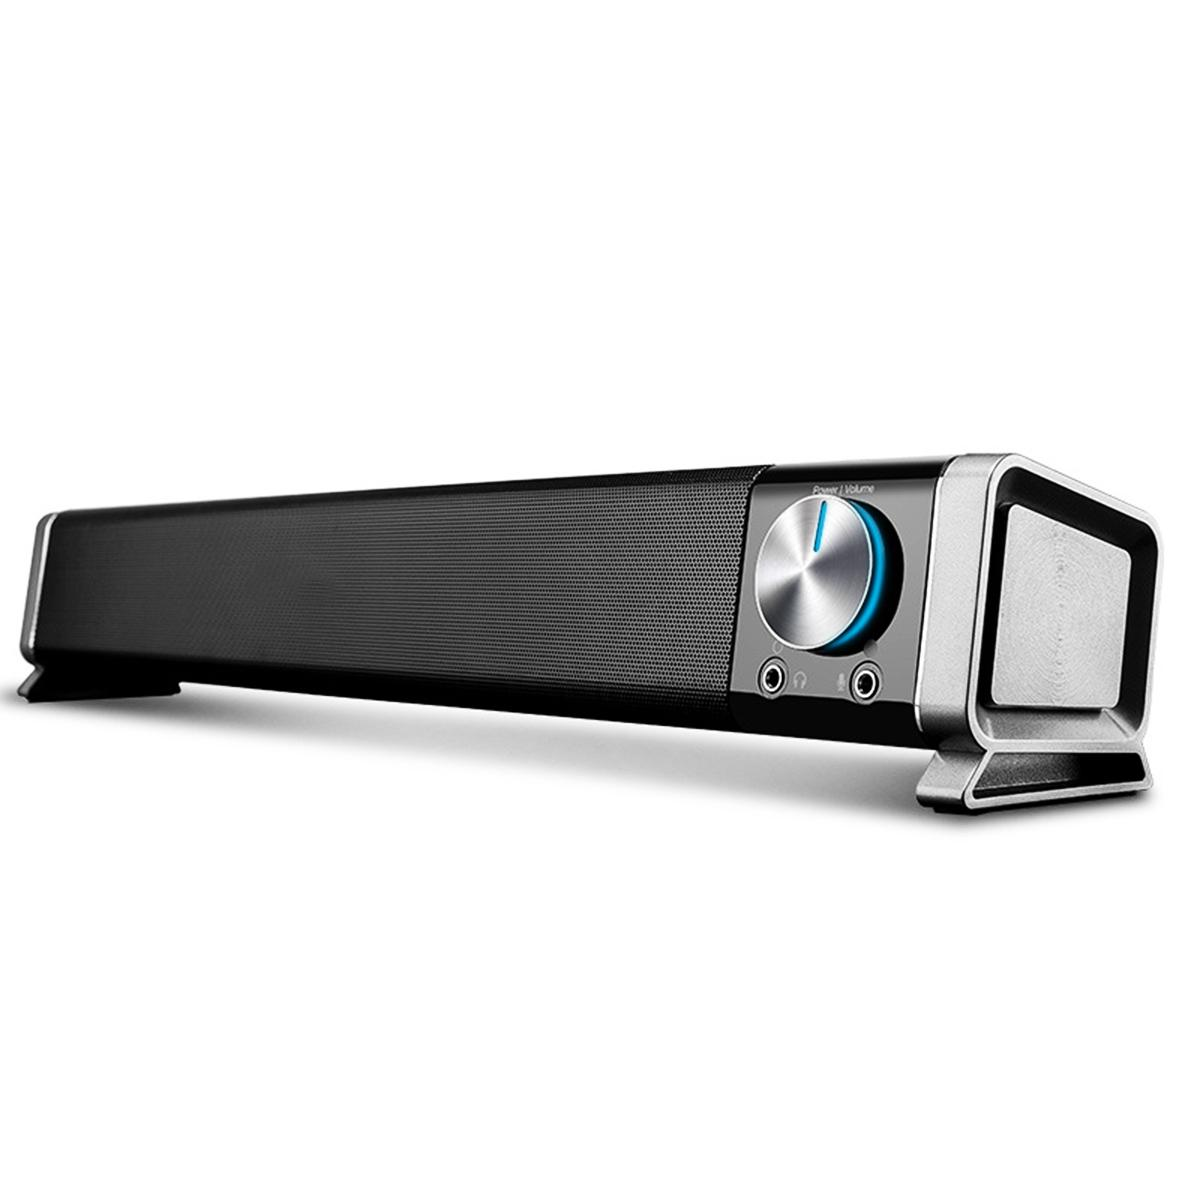 USB Portable Soundbar Speaker Subwoofer TV